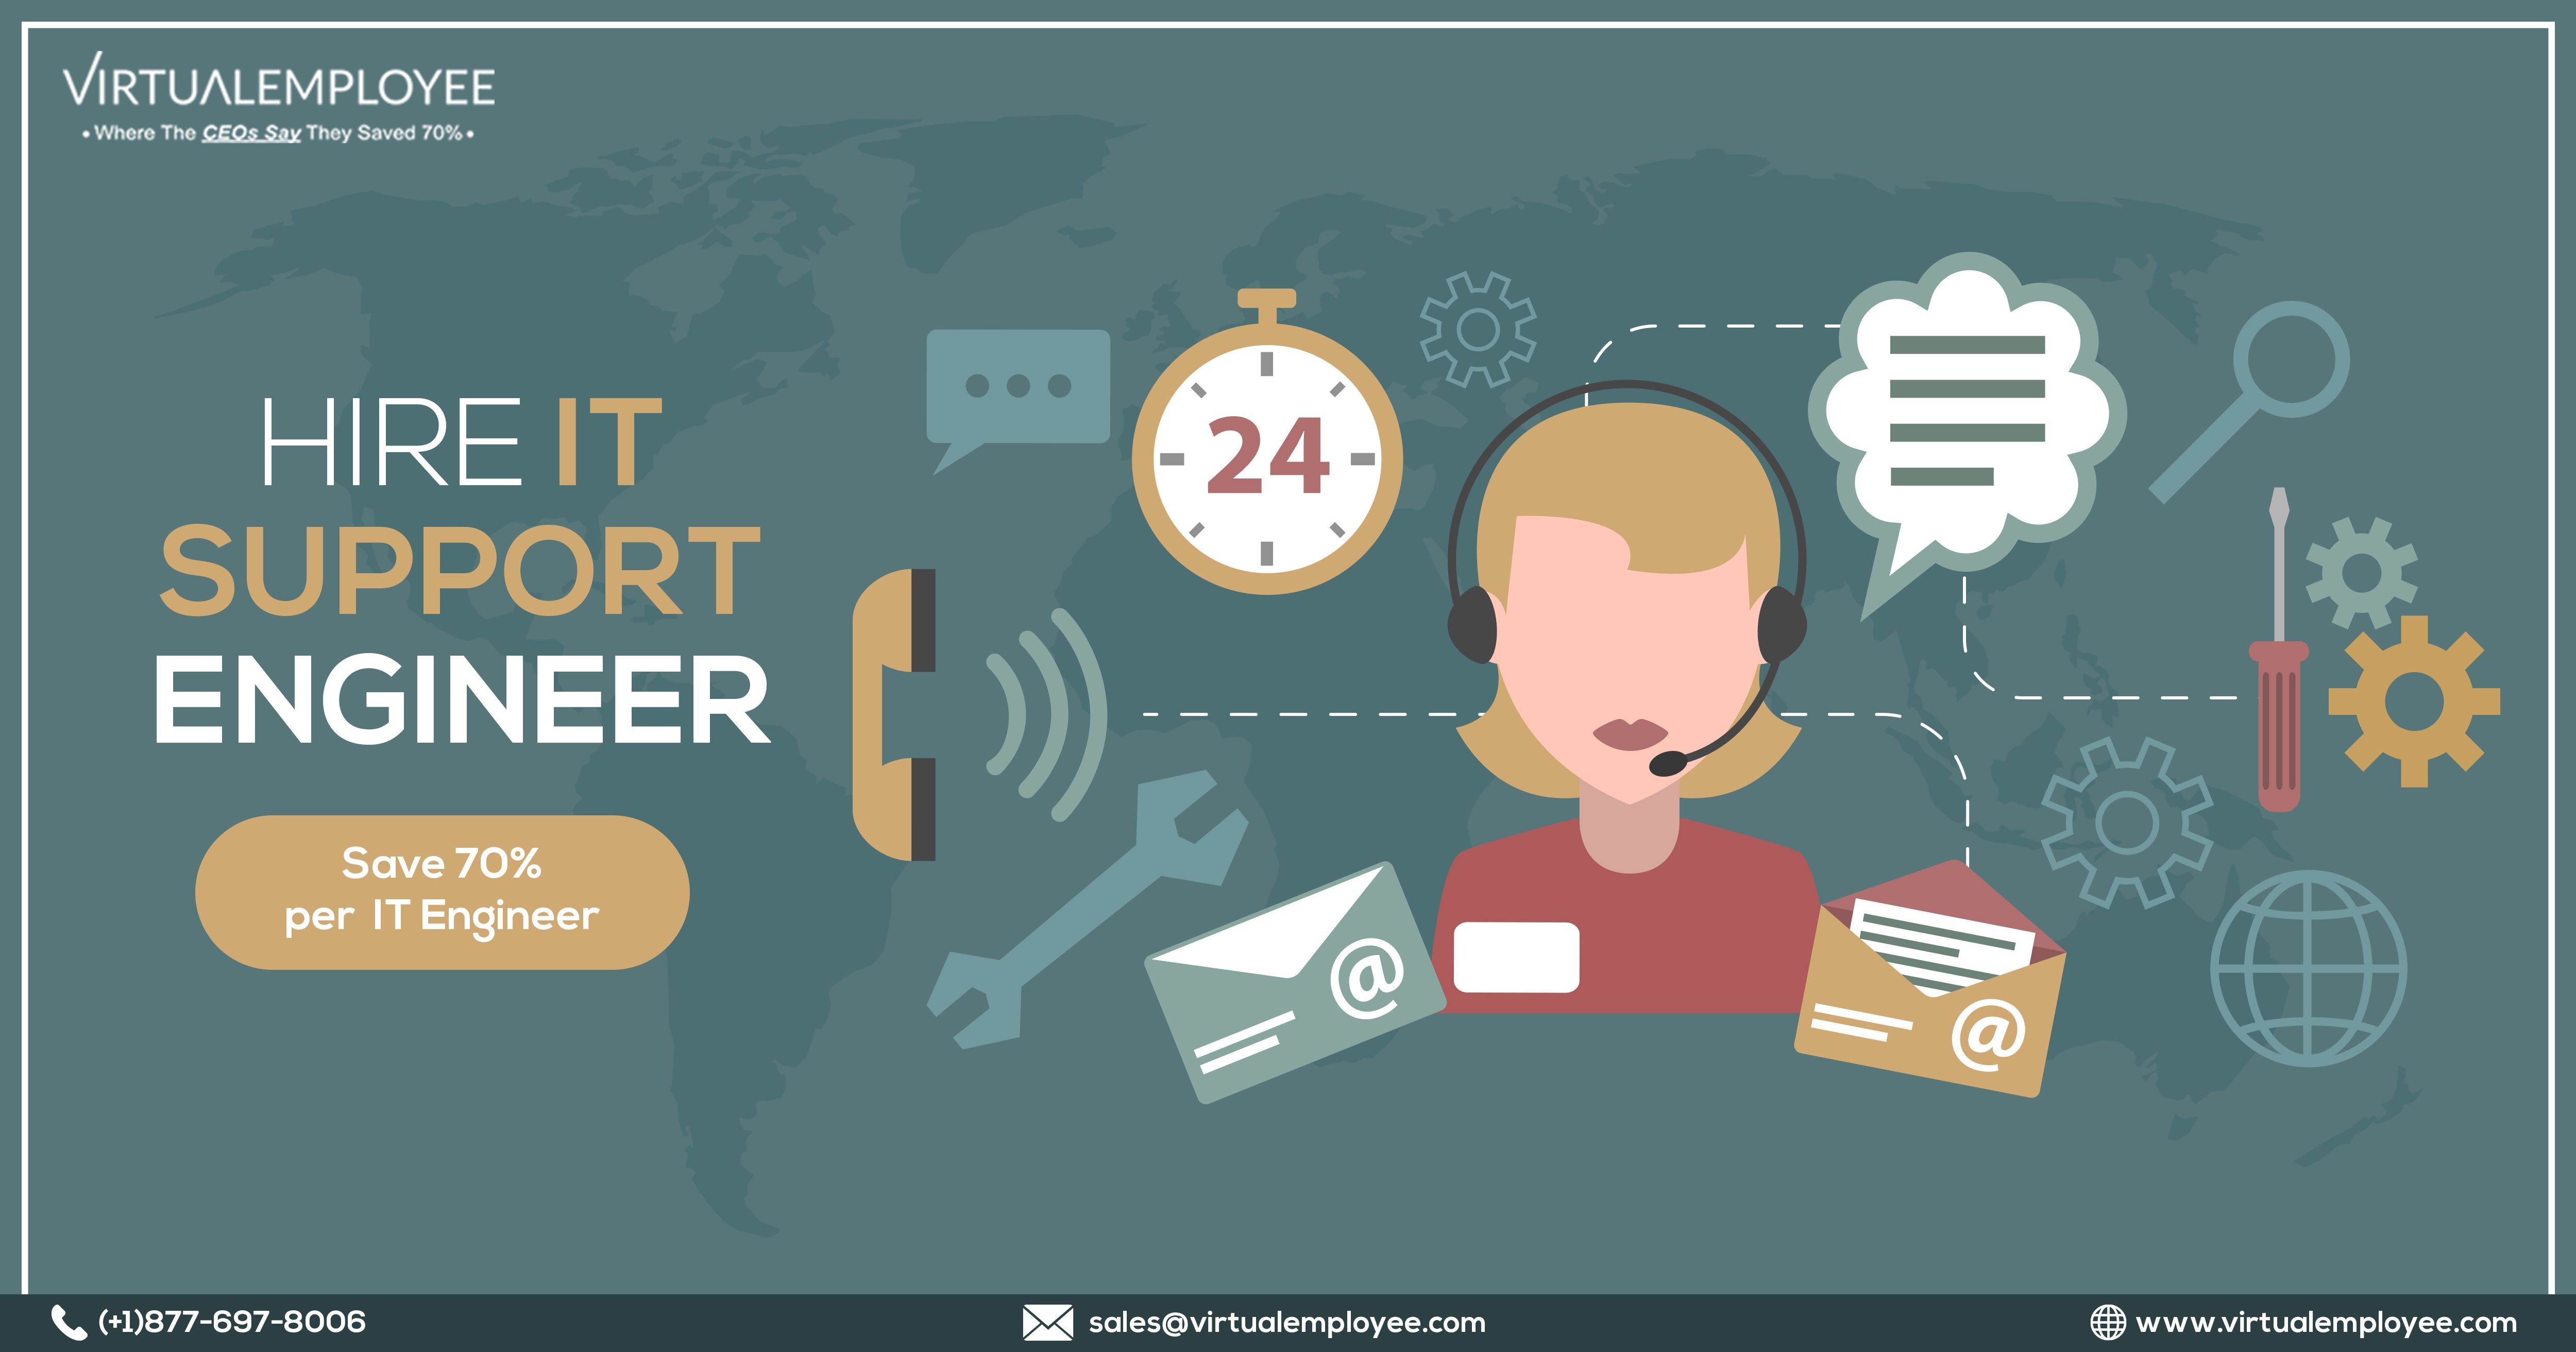 Hire remote technical support engineers from Virtual